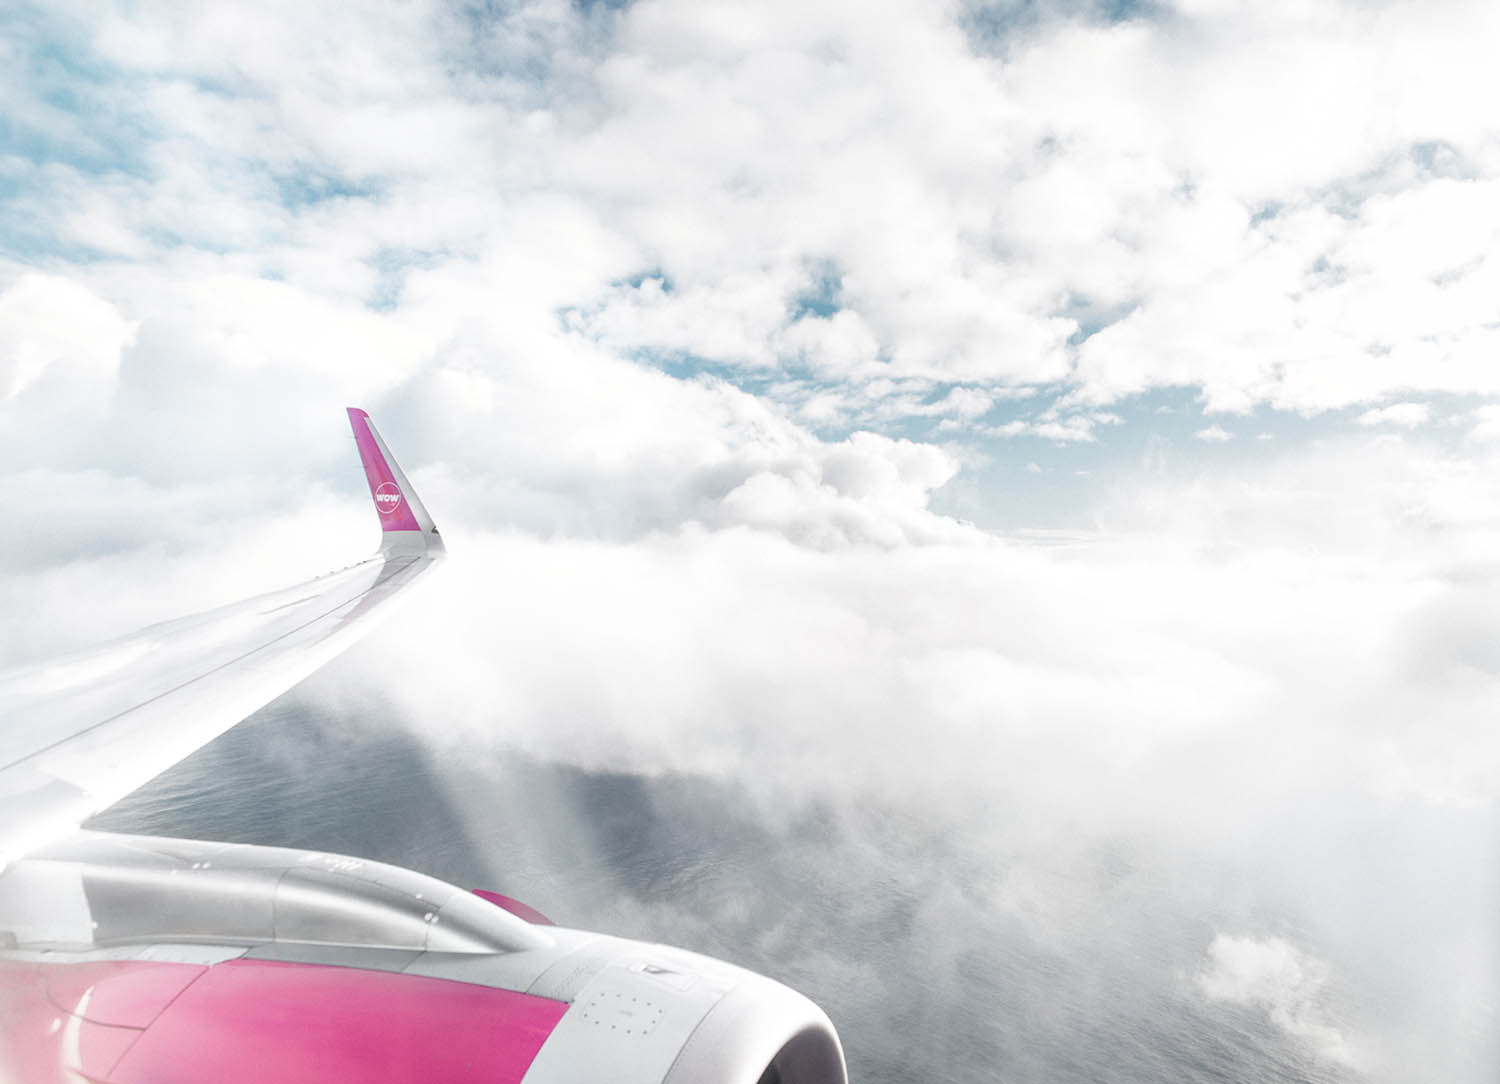 Traveling to San Francisco - View from WOW air's pink plane